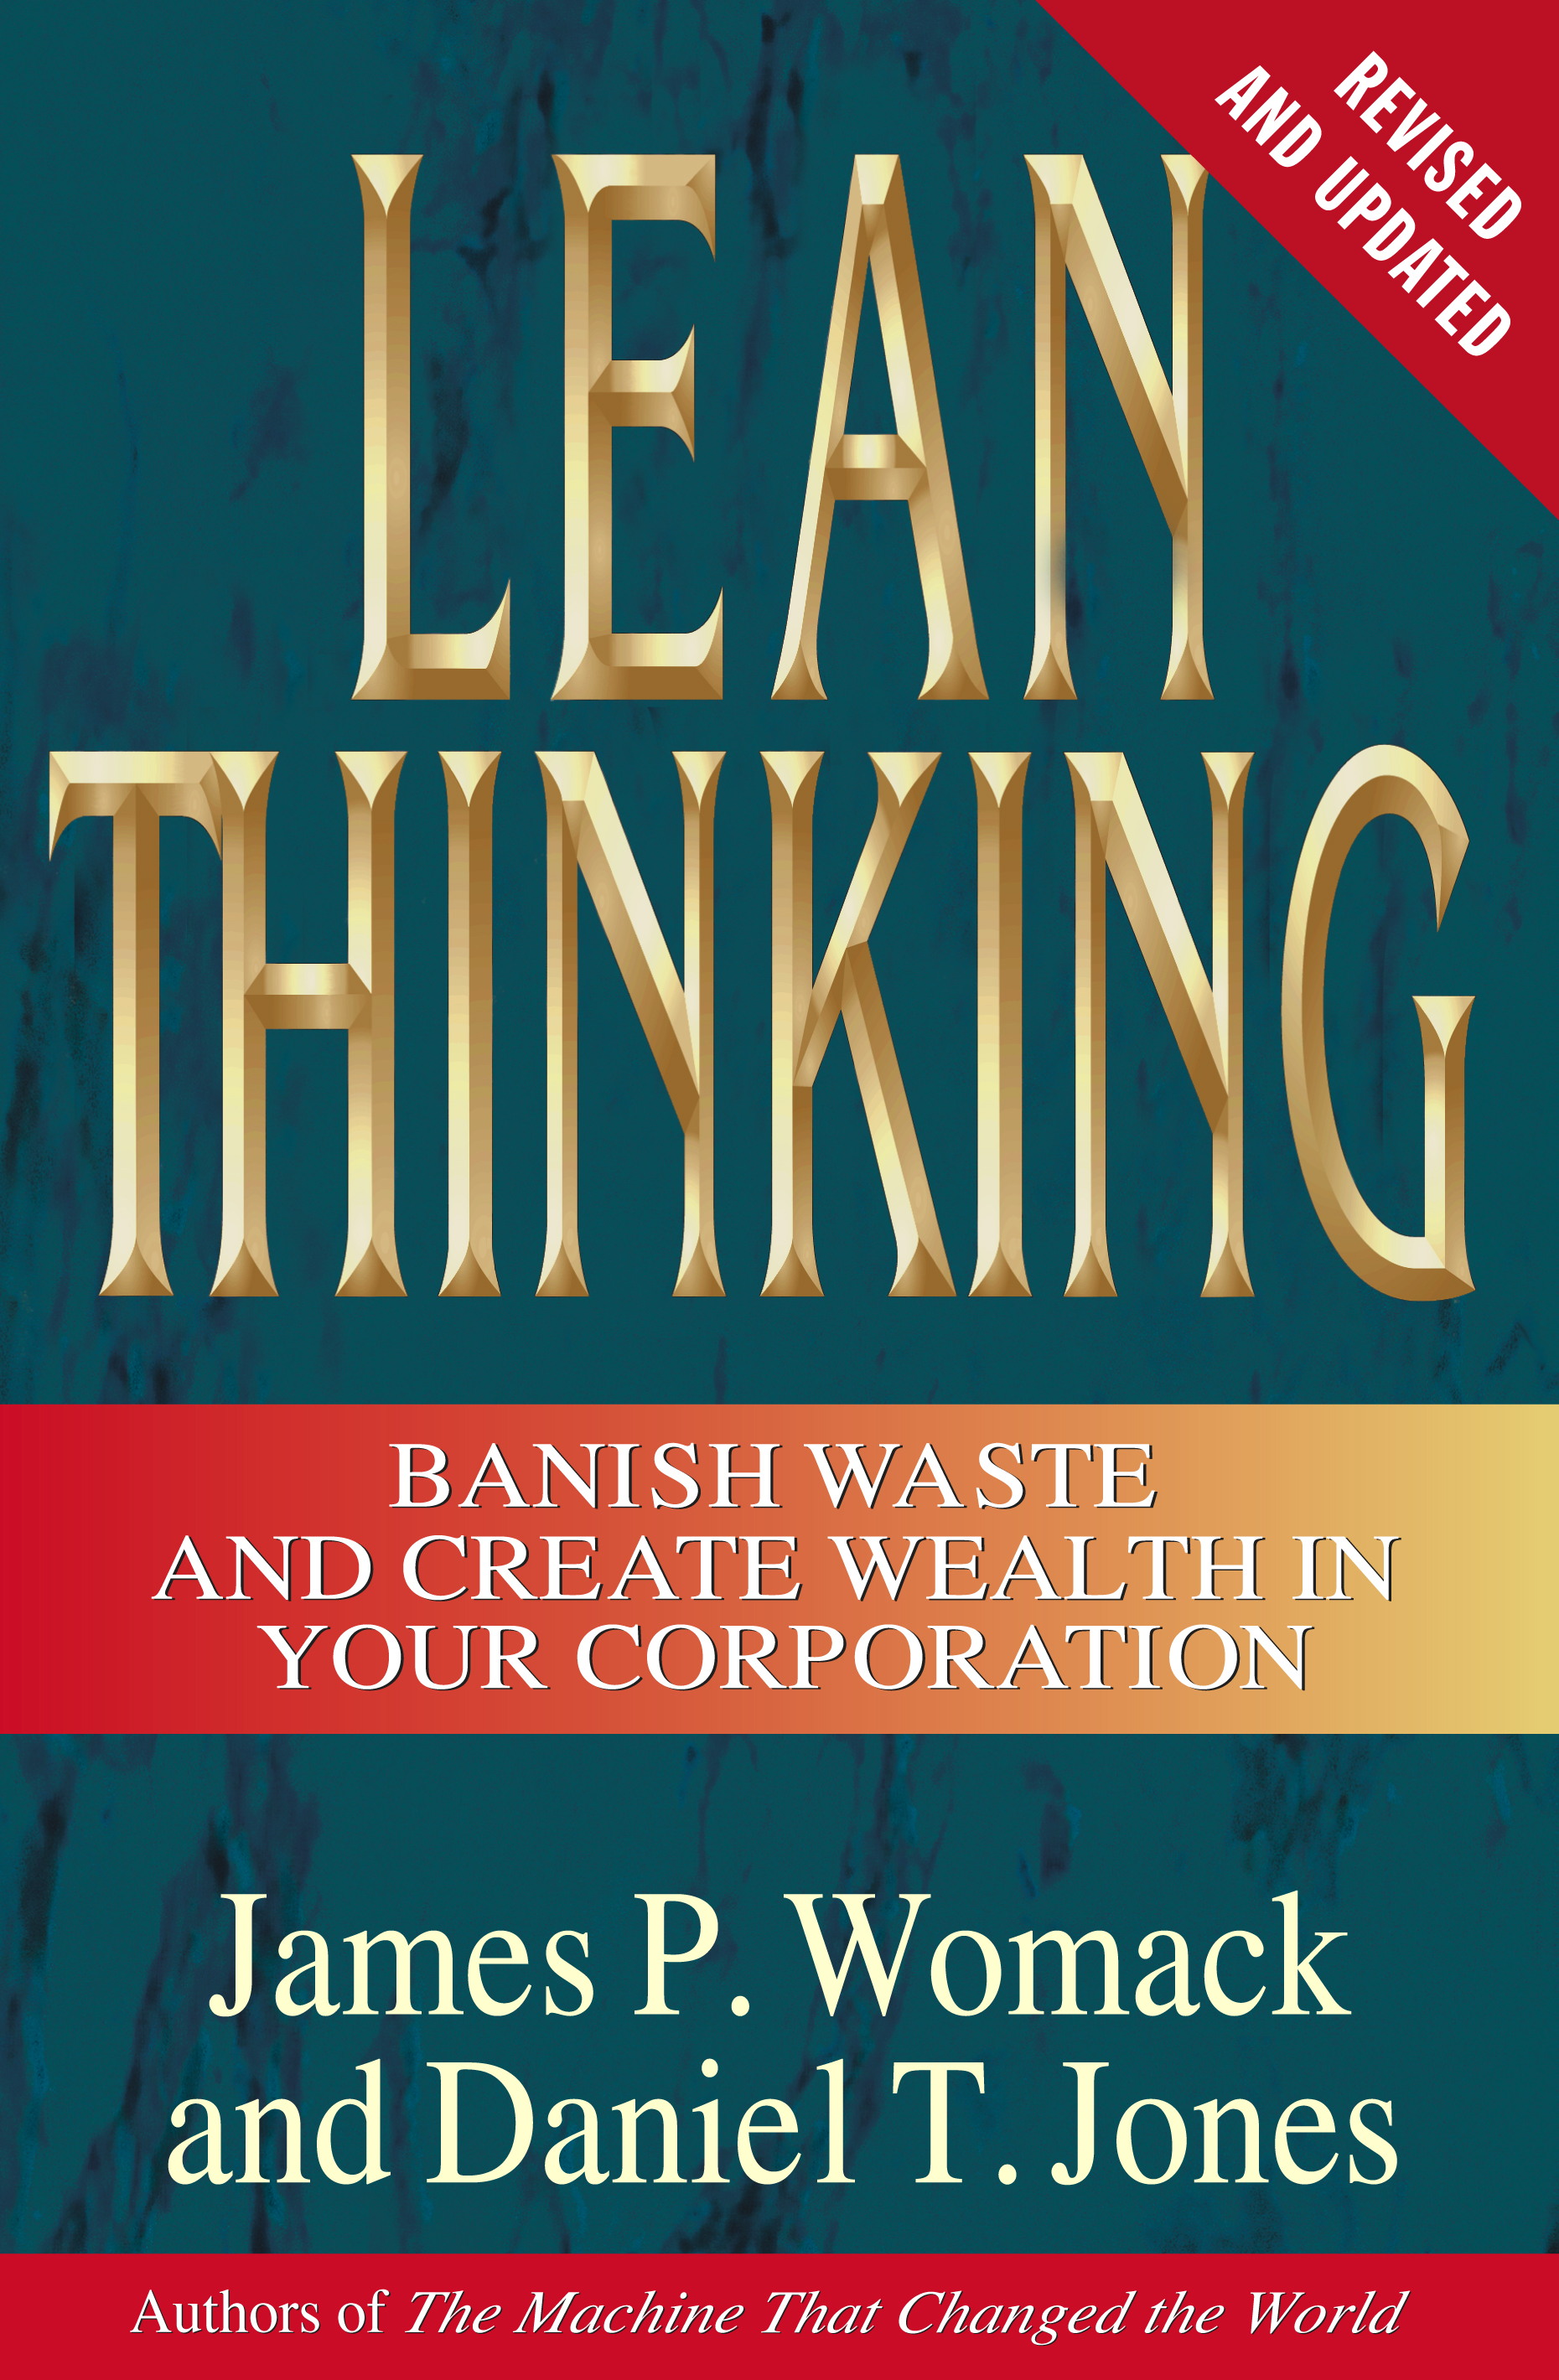 Lean thinking book by james p womack daniel t jones official cvr9780743249270 9780743249270 hr lean thinking fandeluxe Images